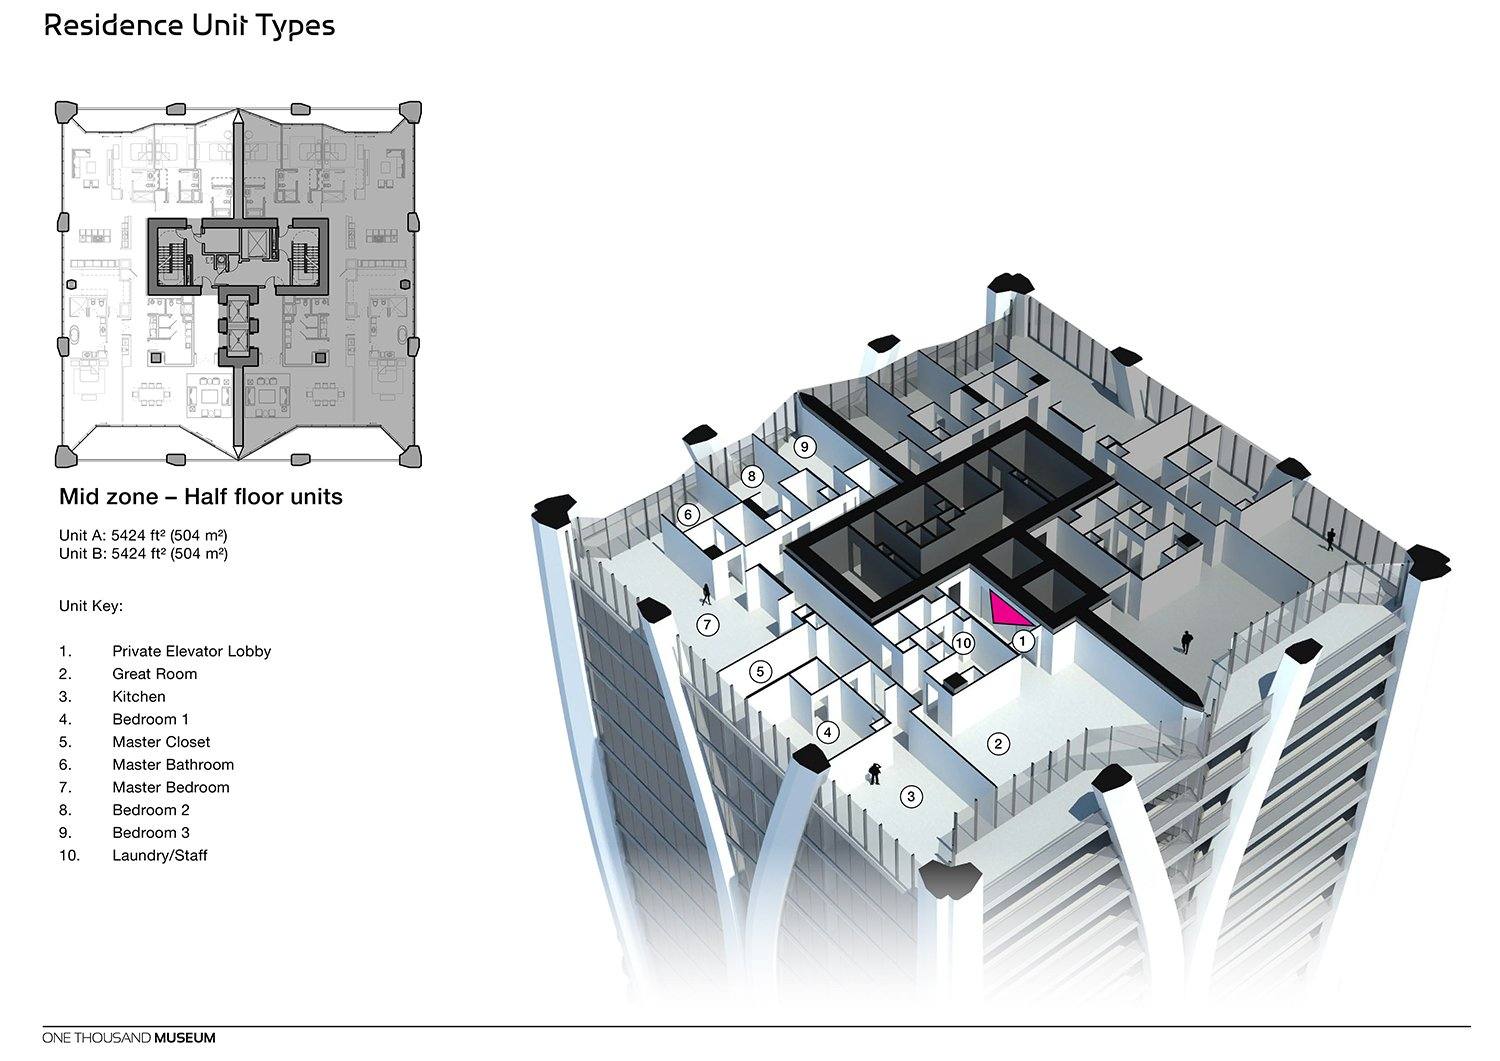 Mid Zone Half Floor Residence Unit Type at One Thousand Museum by Zaha Hadid Architects Courtesy of Zaha Hadid Architects}